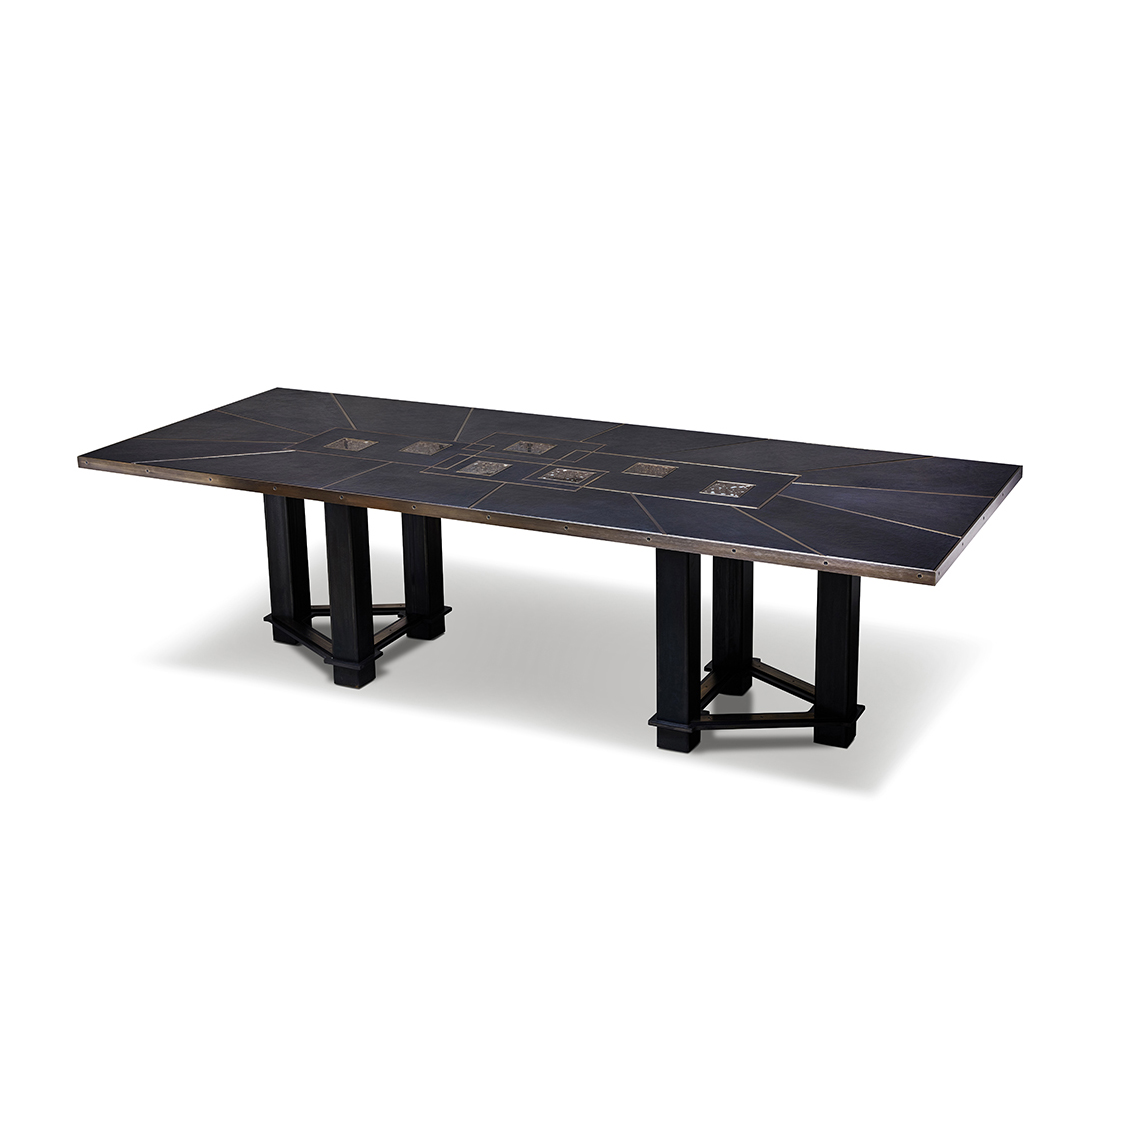 Stratum Dining Table by Chuck Moffit